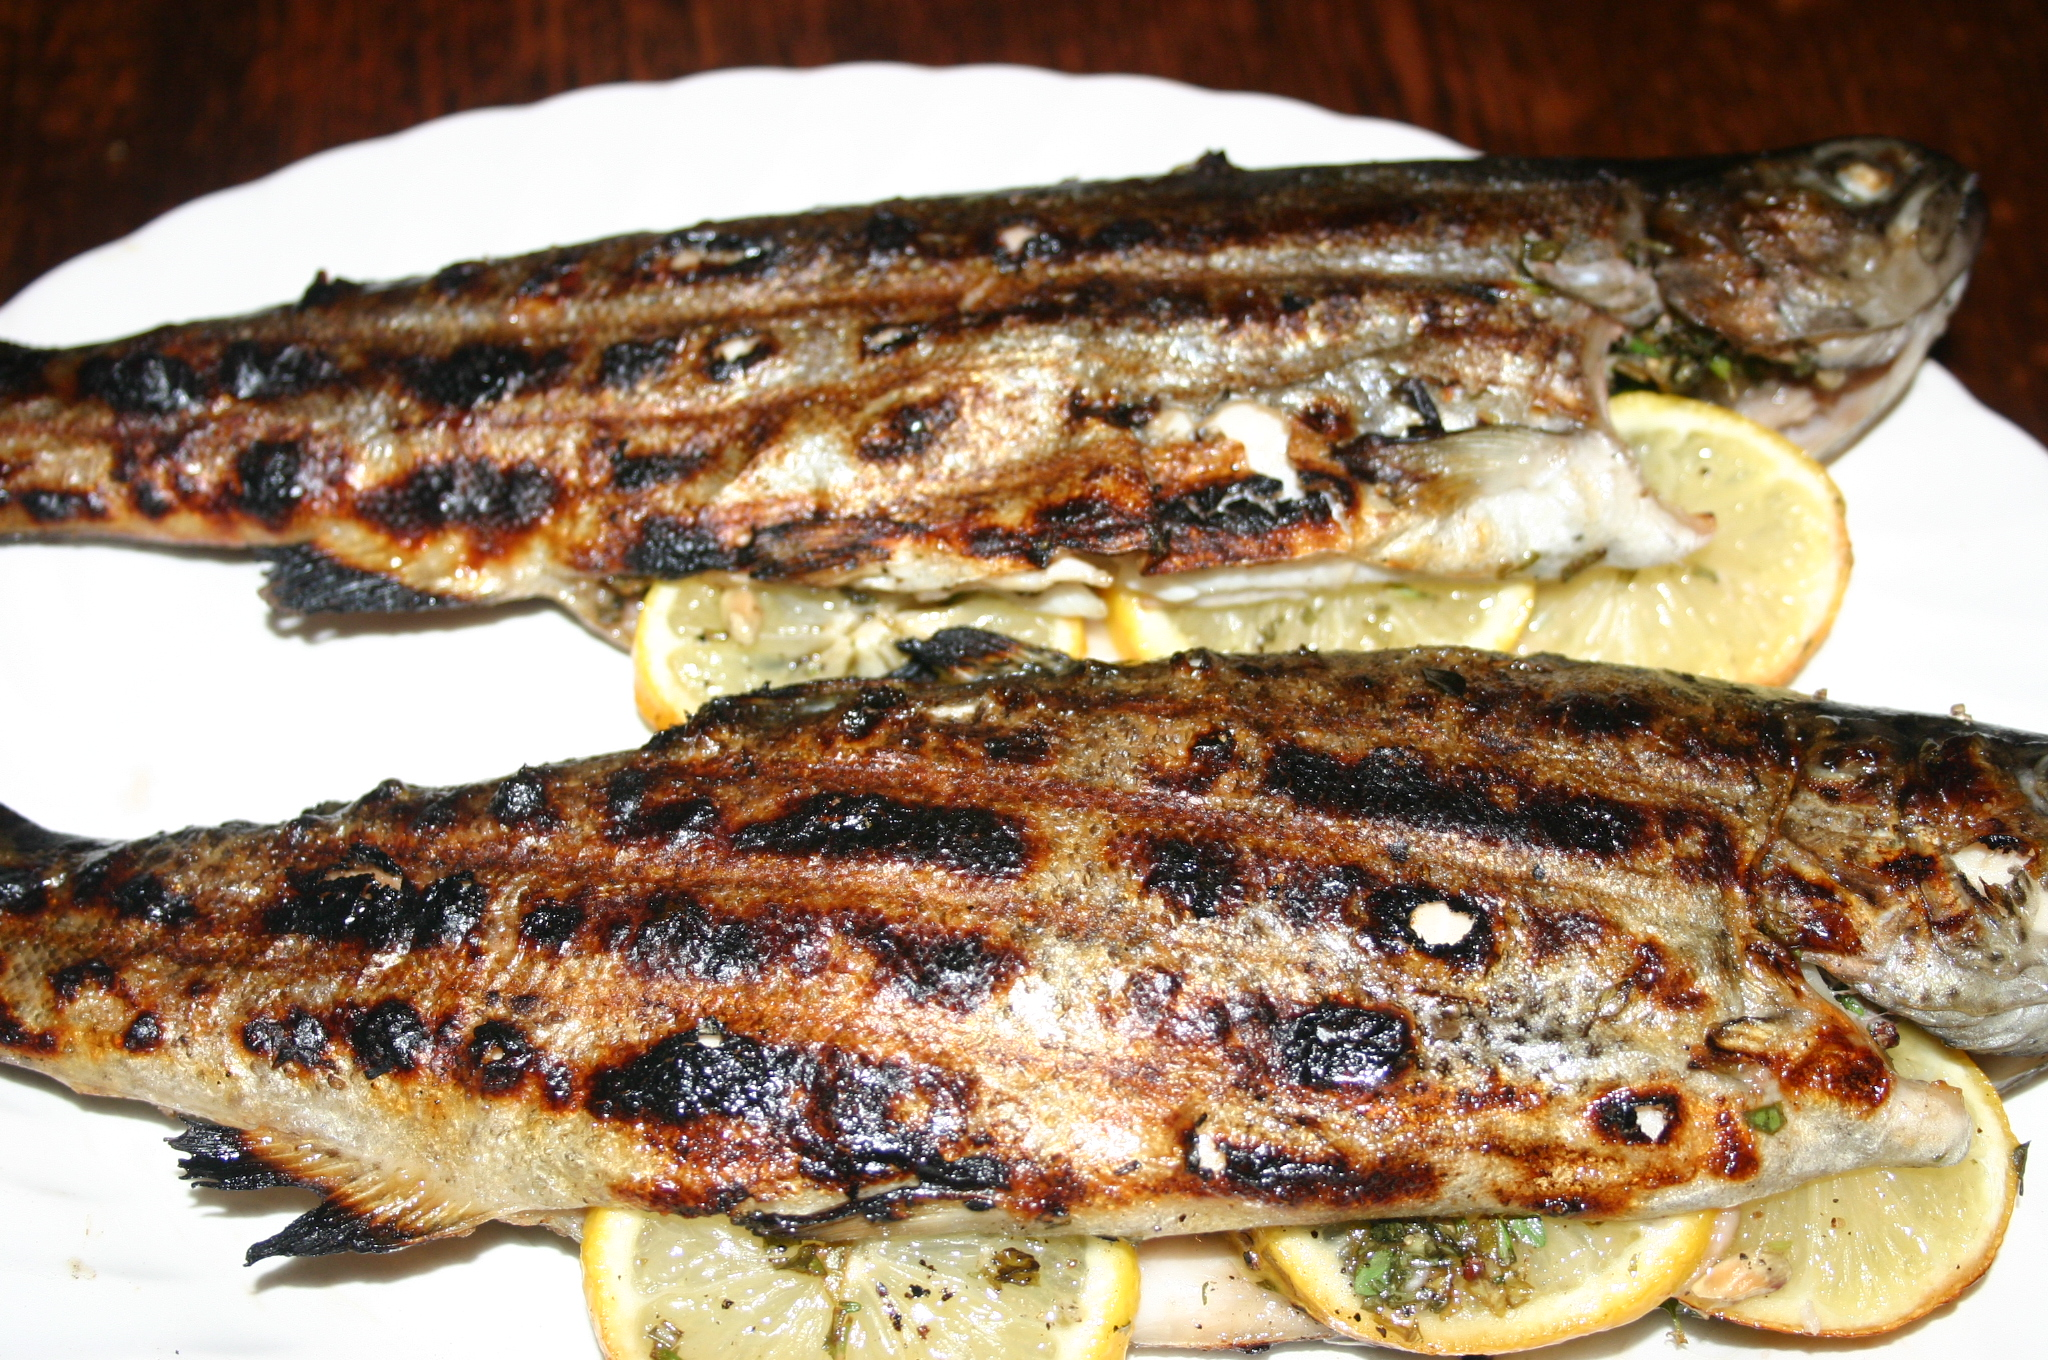 Grilled Whole Trout Trout grilled and resting